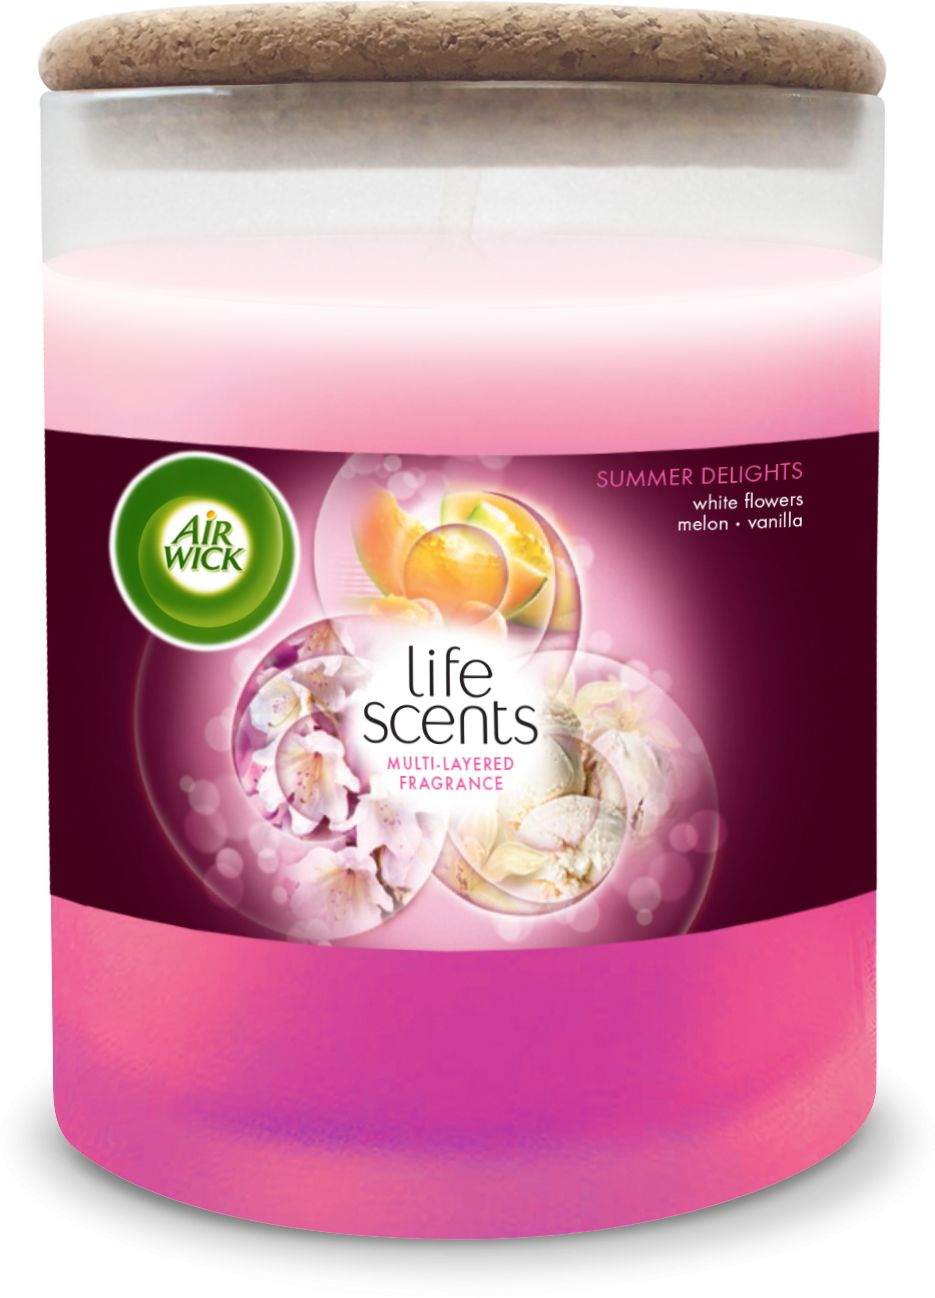 Air Wick Air Wick swieca Life Scents Owocowe Slodkosci/ Summer Delight 5900627071597